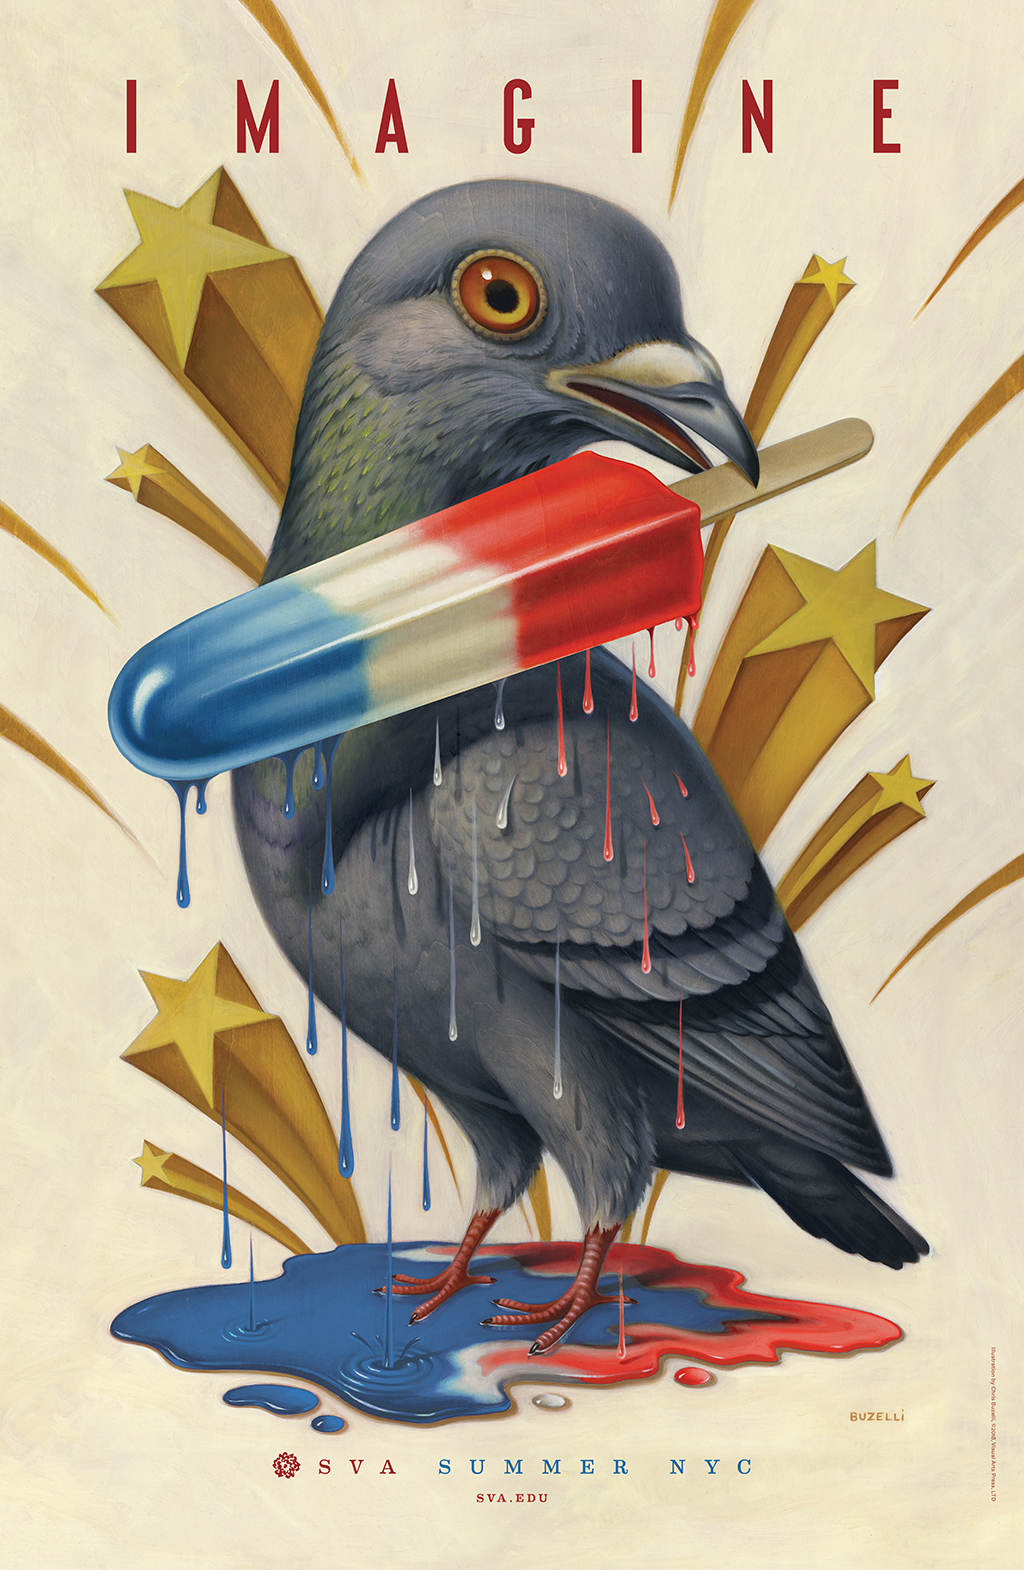 Color illustration of a grey pigeon holding a melting, red, white and blue popsicle in its beak. Background is white with yellow three-dimensional stars.